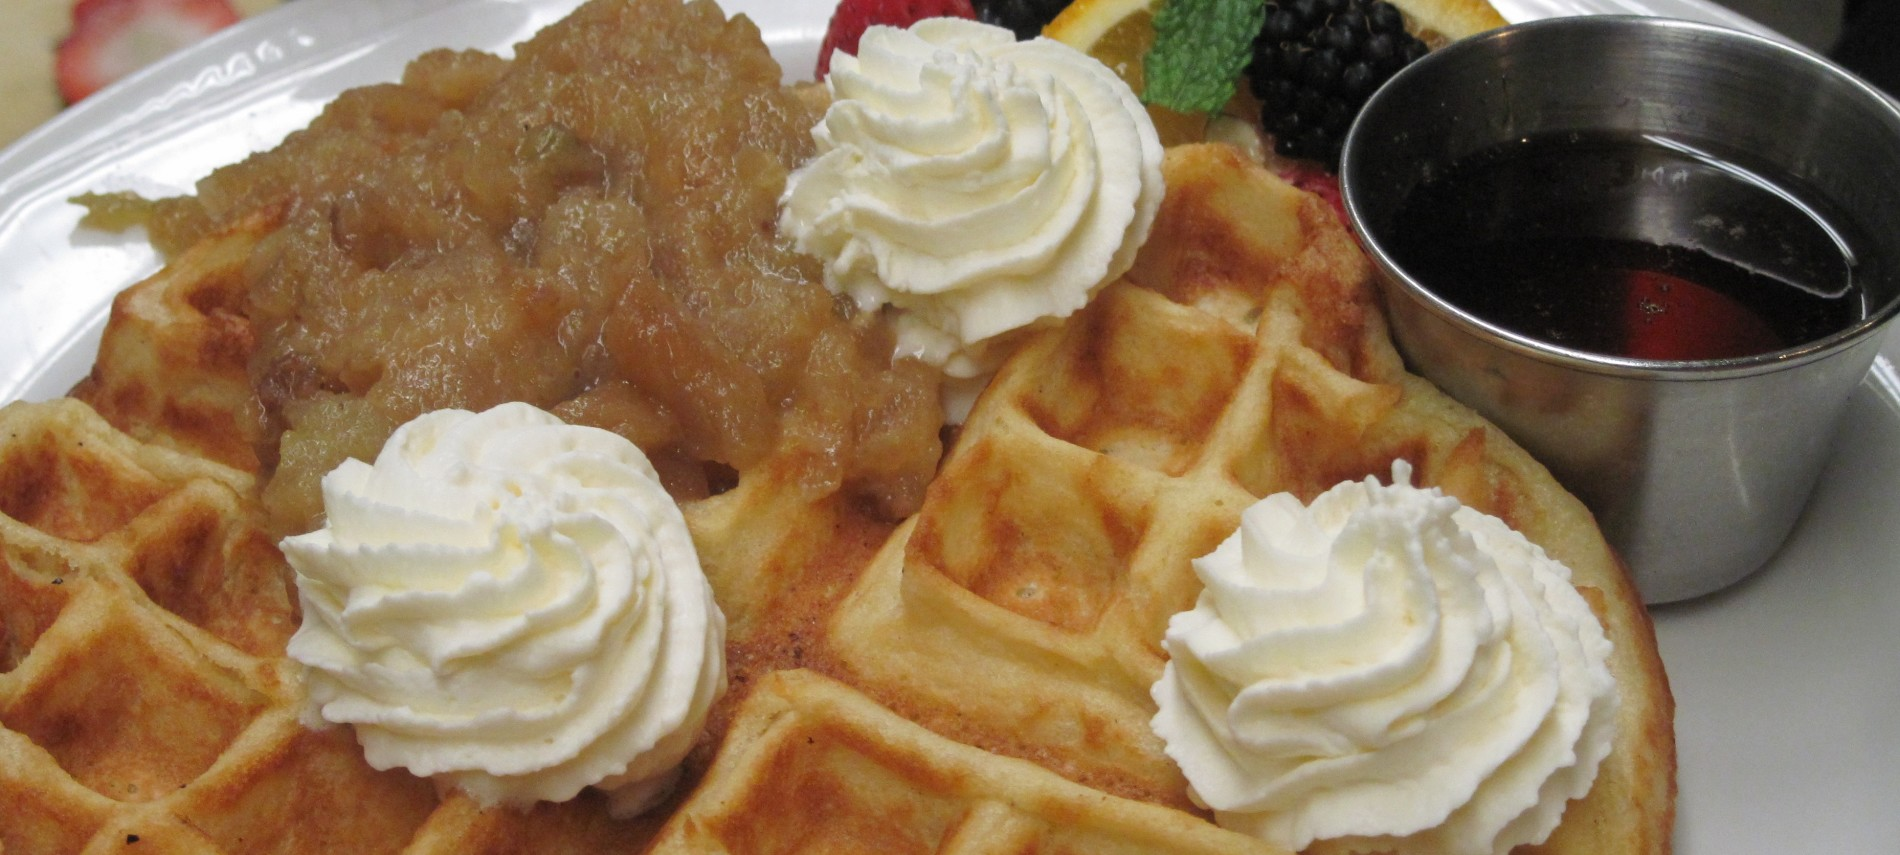 Waffles from Deerfield Inn